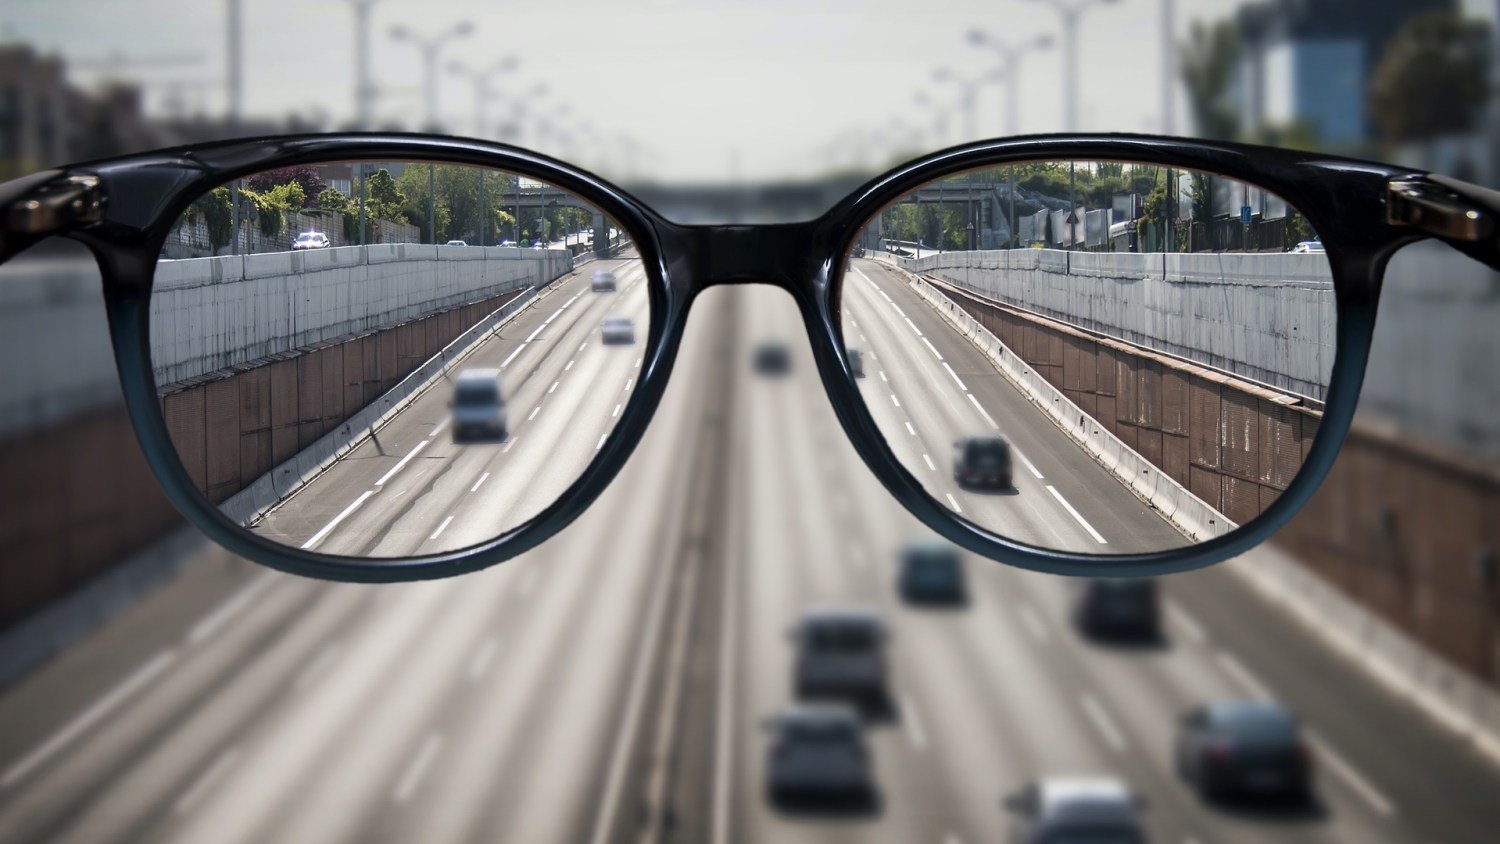 Driver eye test not fir for purpose